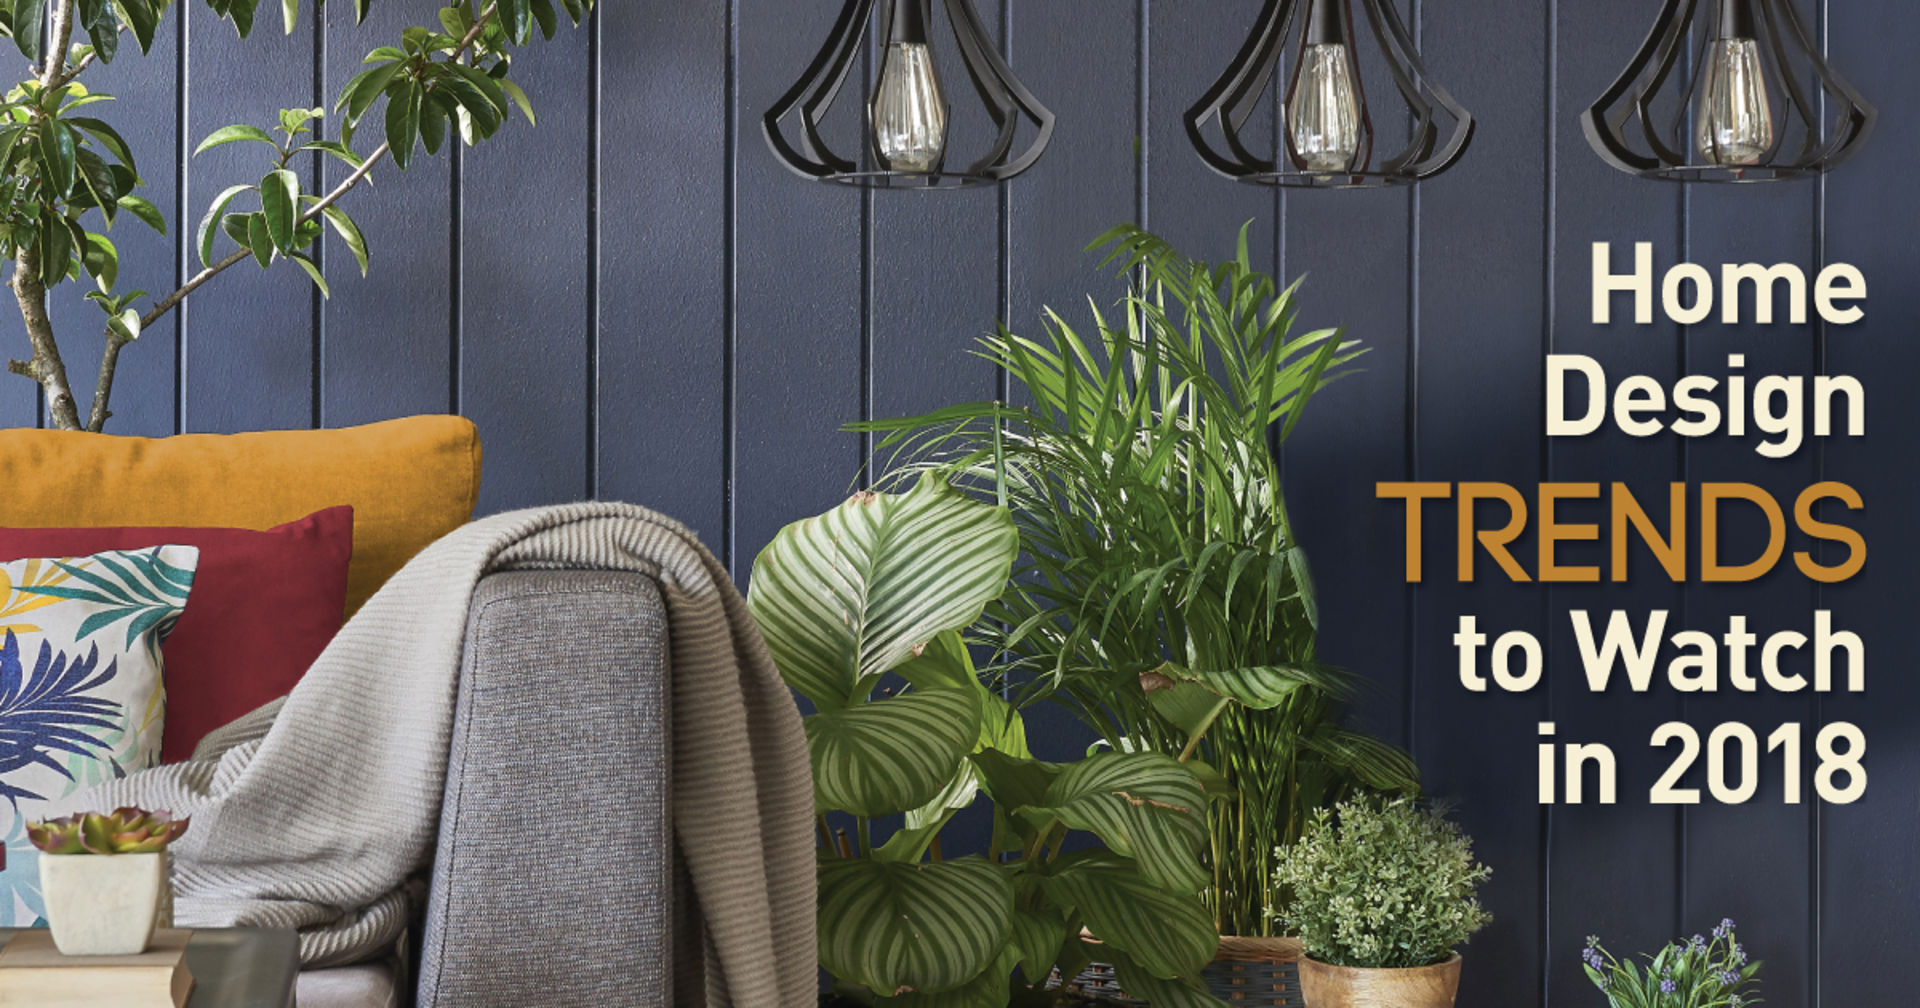 Home Design Trends to Watch in 2018